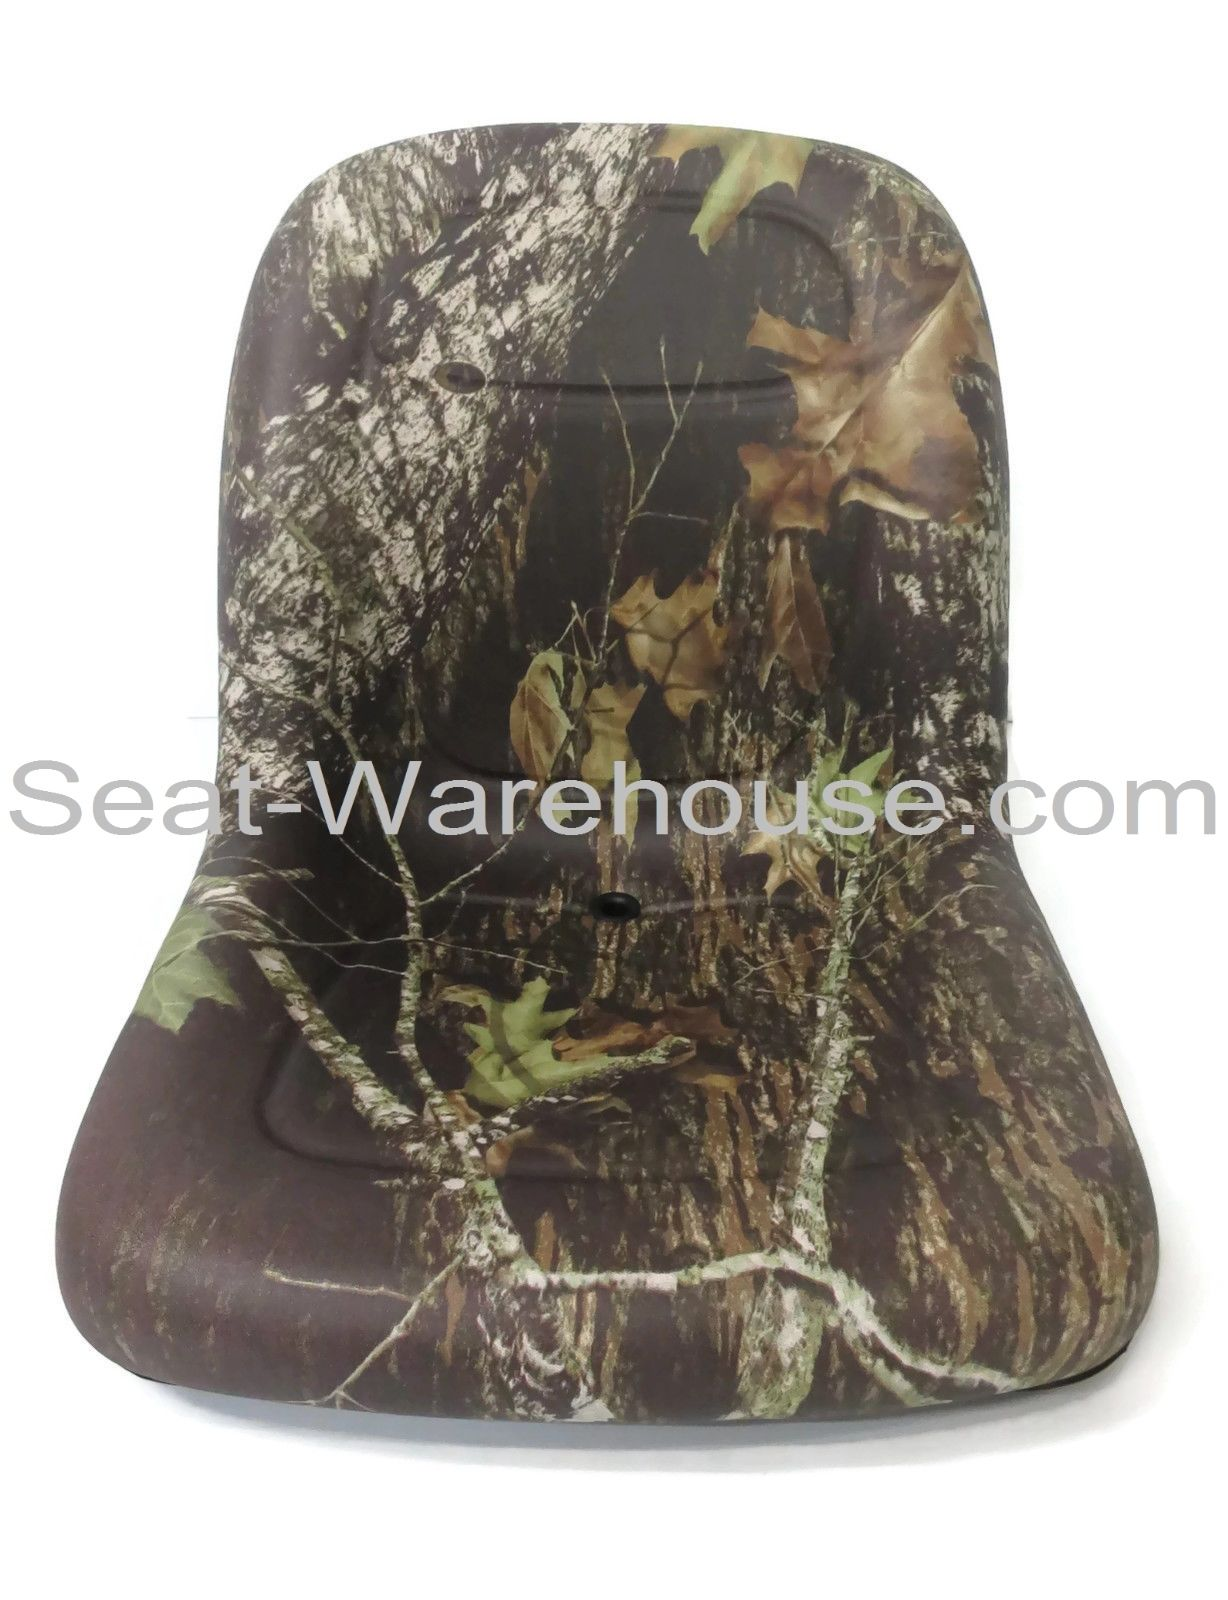 CAMO HIGH BACK SEAT w Slide Track Kit for Case Skid Steer Loader PZ 162227835446 3 camo high back seat w slide track kit for case skid steer loader case 85xt wiring diagram at soozxer.org